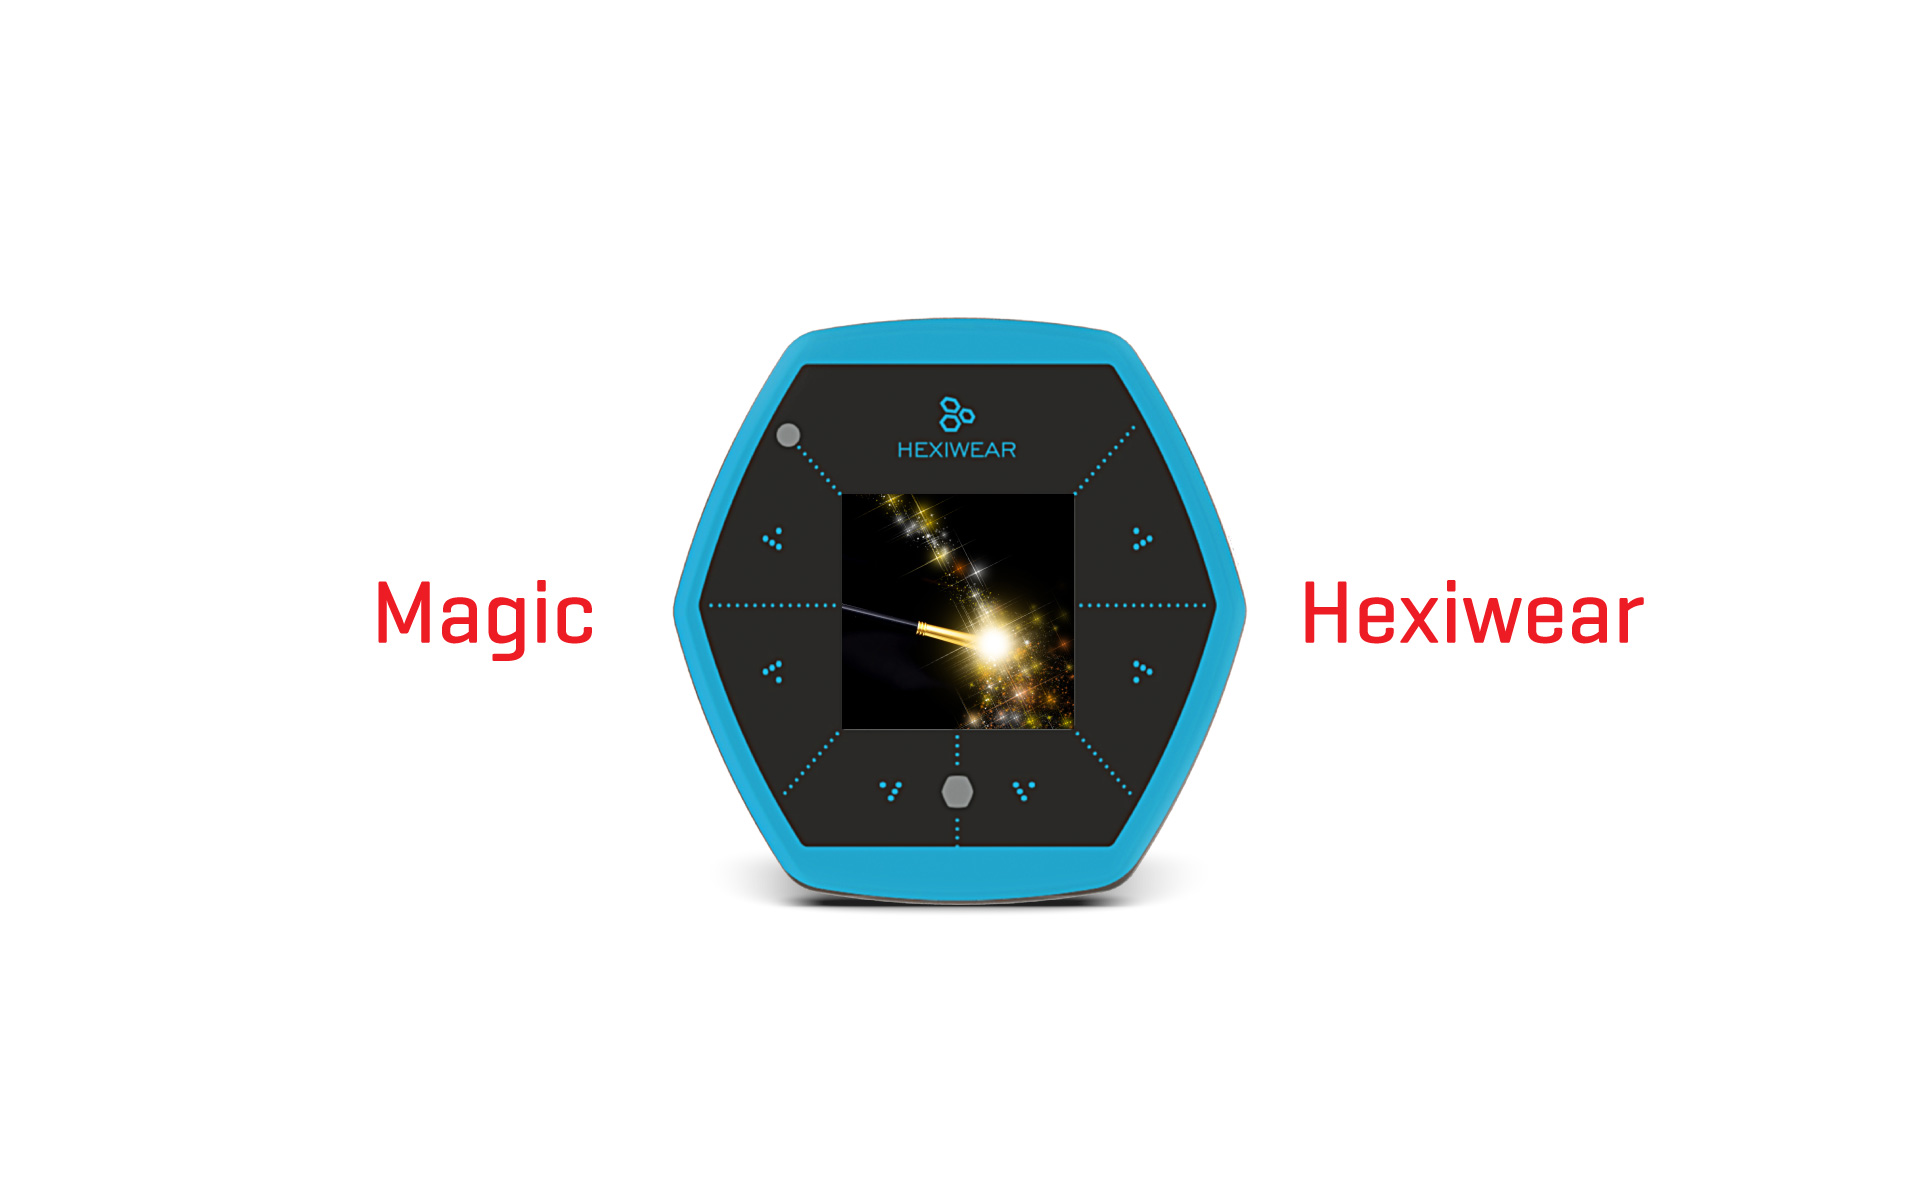 Hexiwear turns into a magic machine